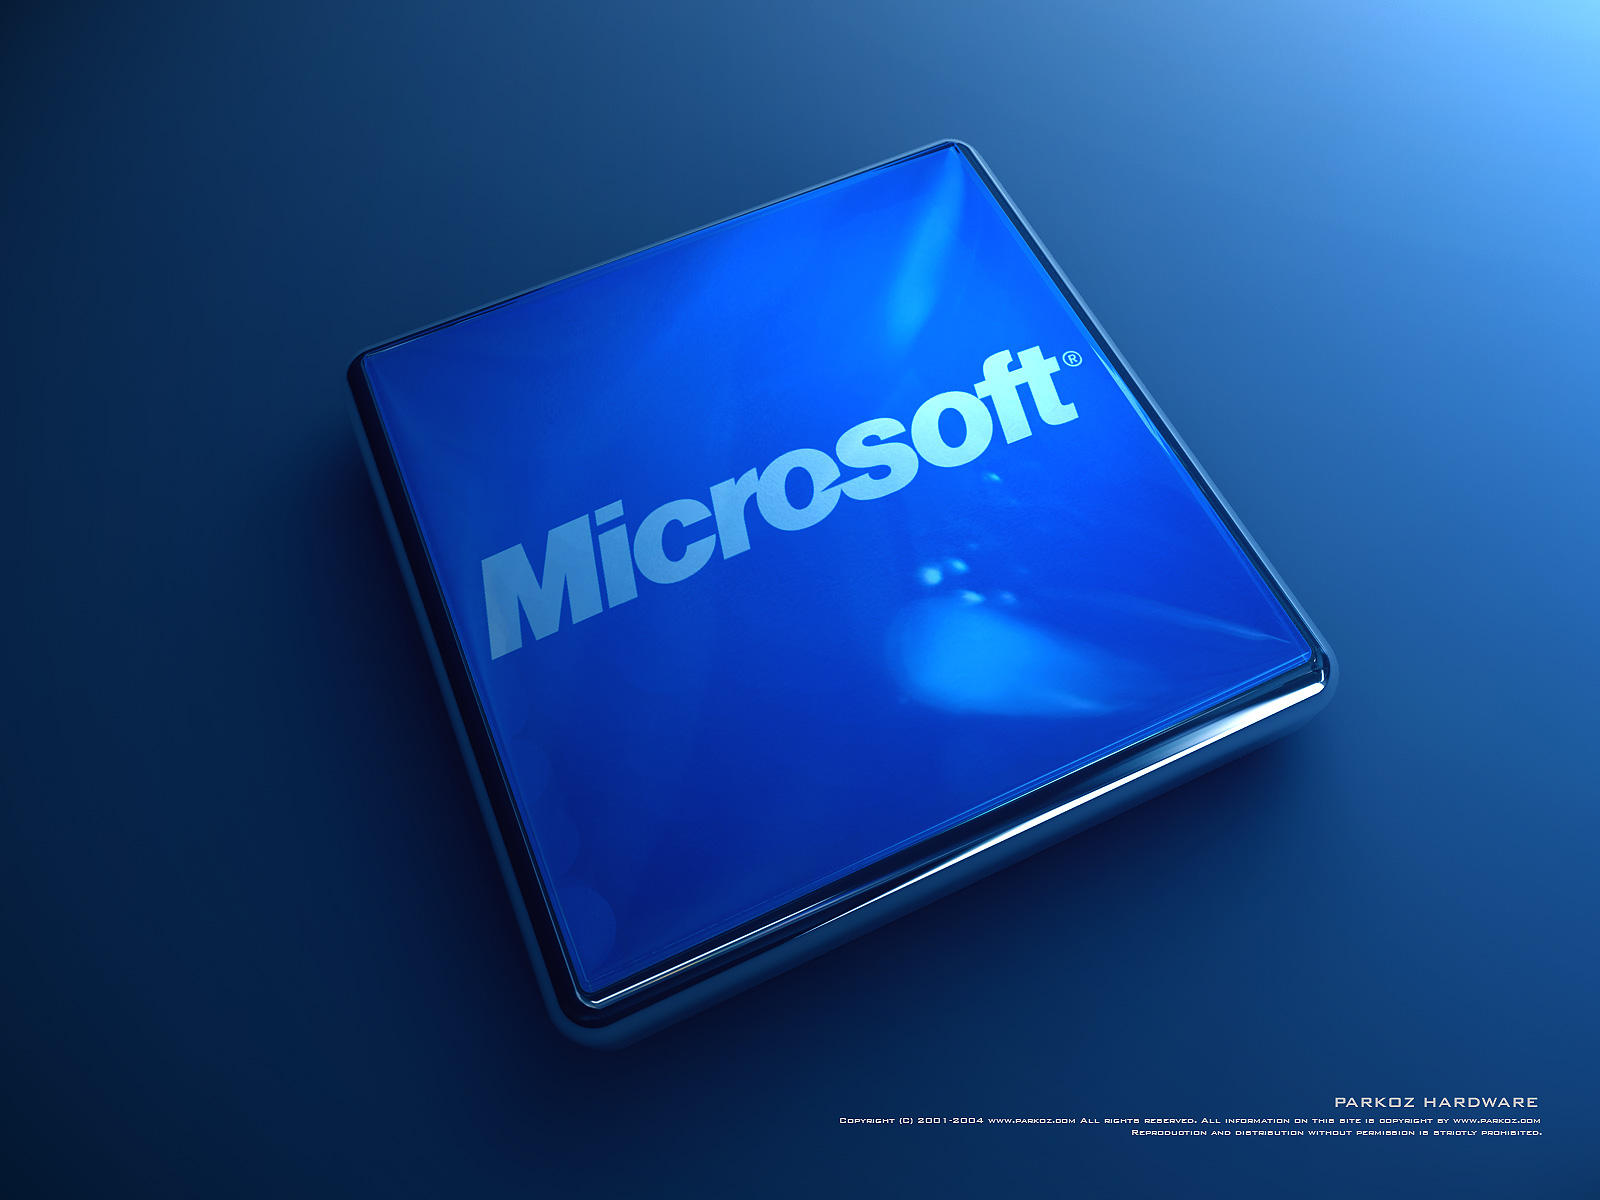 microsoft windows wallpapers and backgrounds 1024x768 pixelhtml 1600x1200